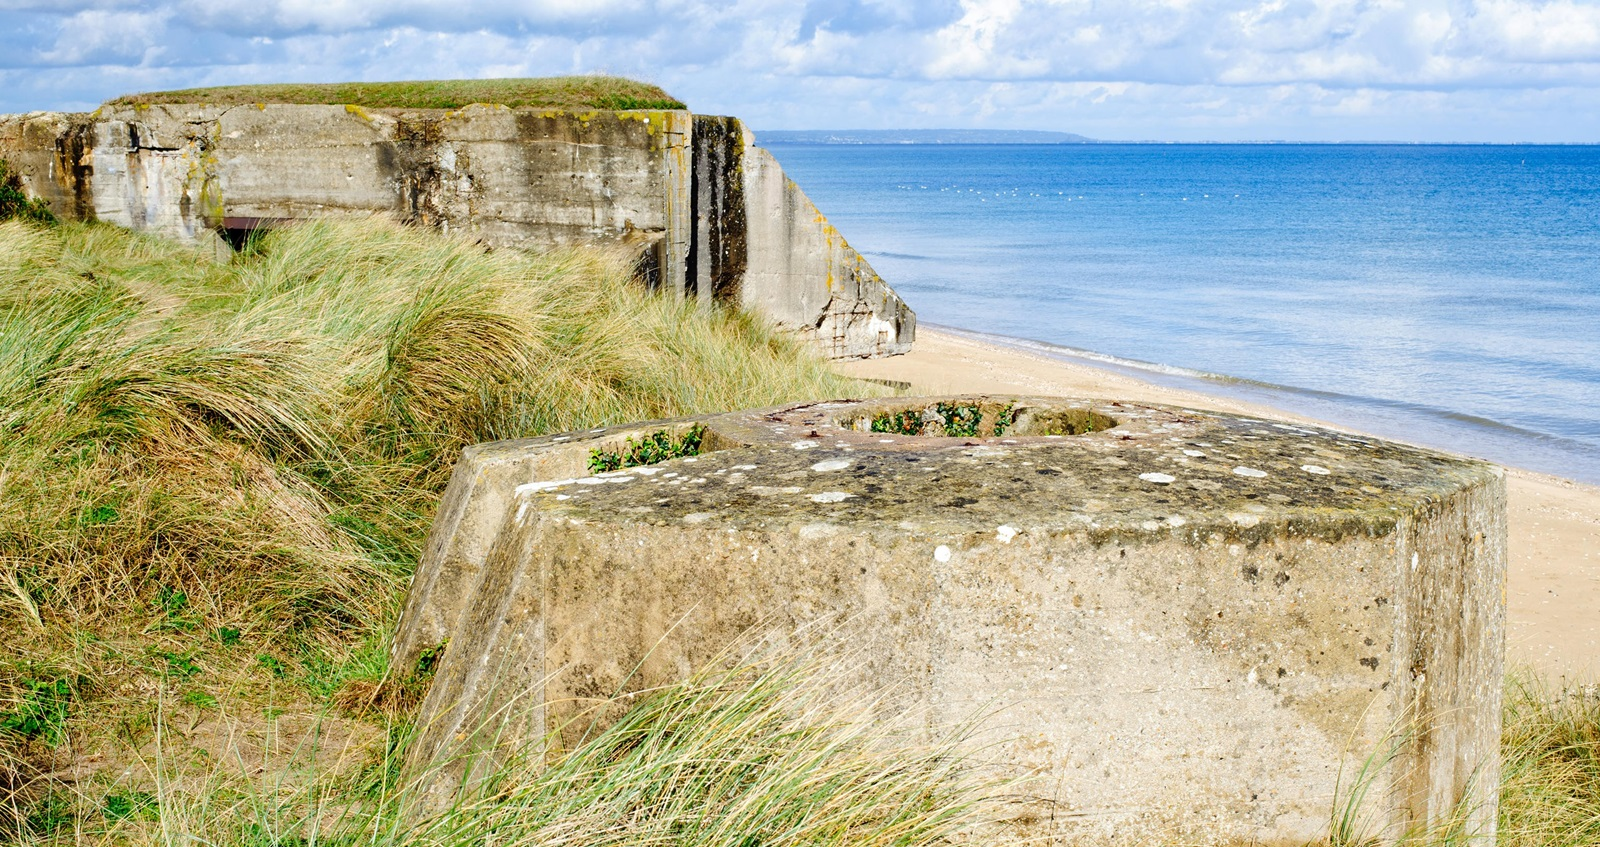 Beach at Normandy (Journeys of Remembrance)